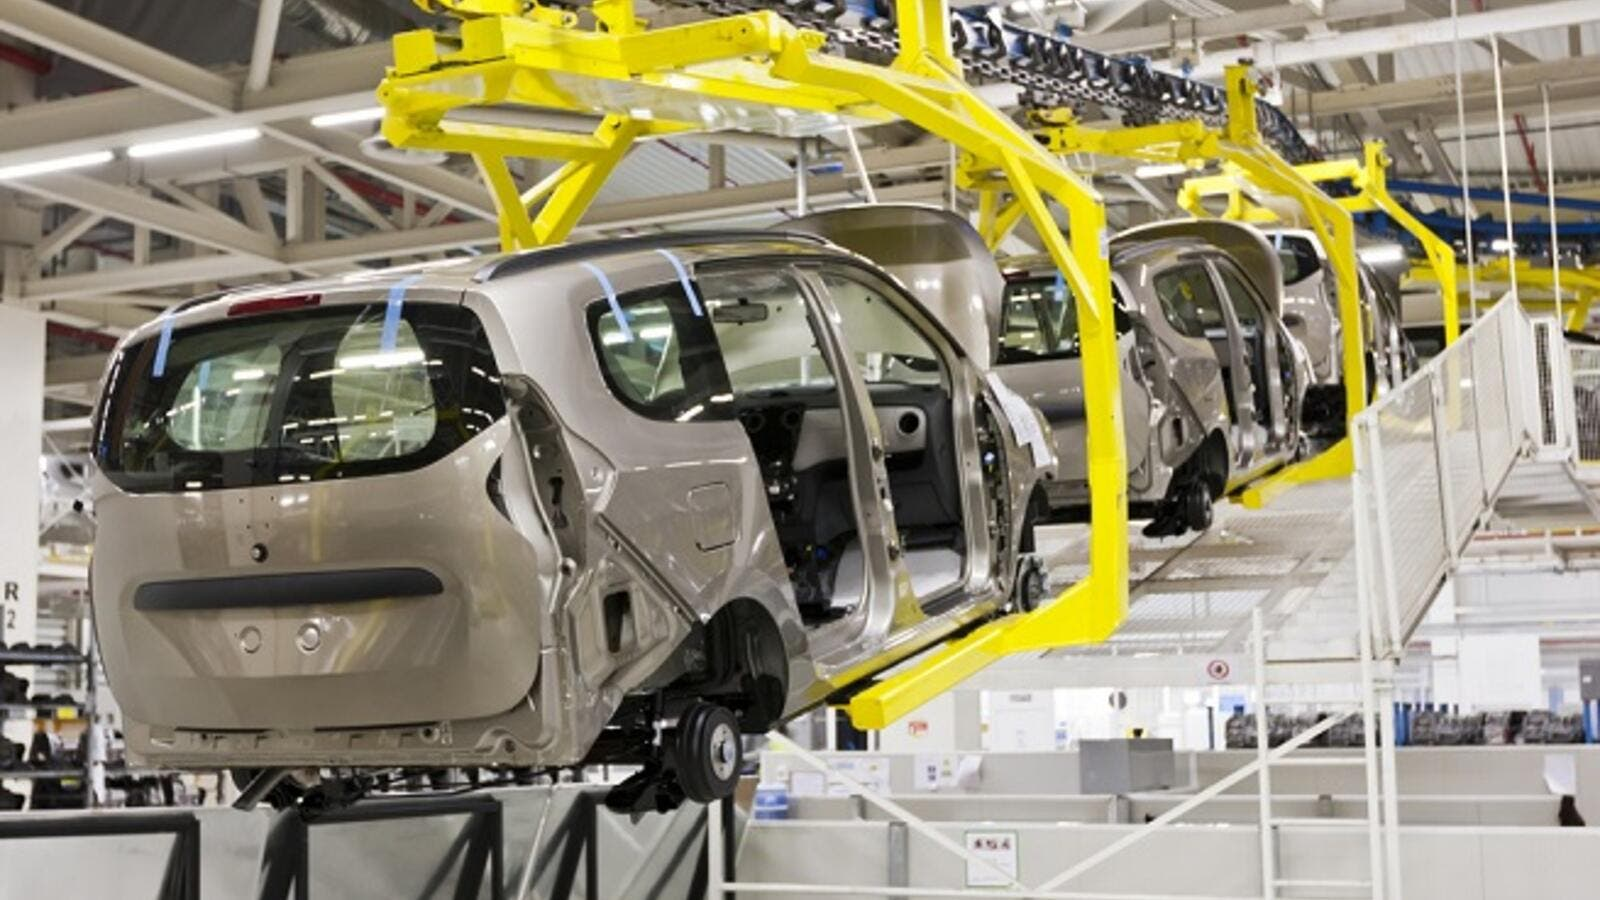 The deal includes the installation of a manufacturing facility specialized in automotive components production. (Shutterstock)